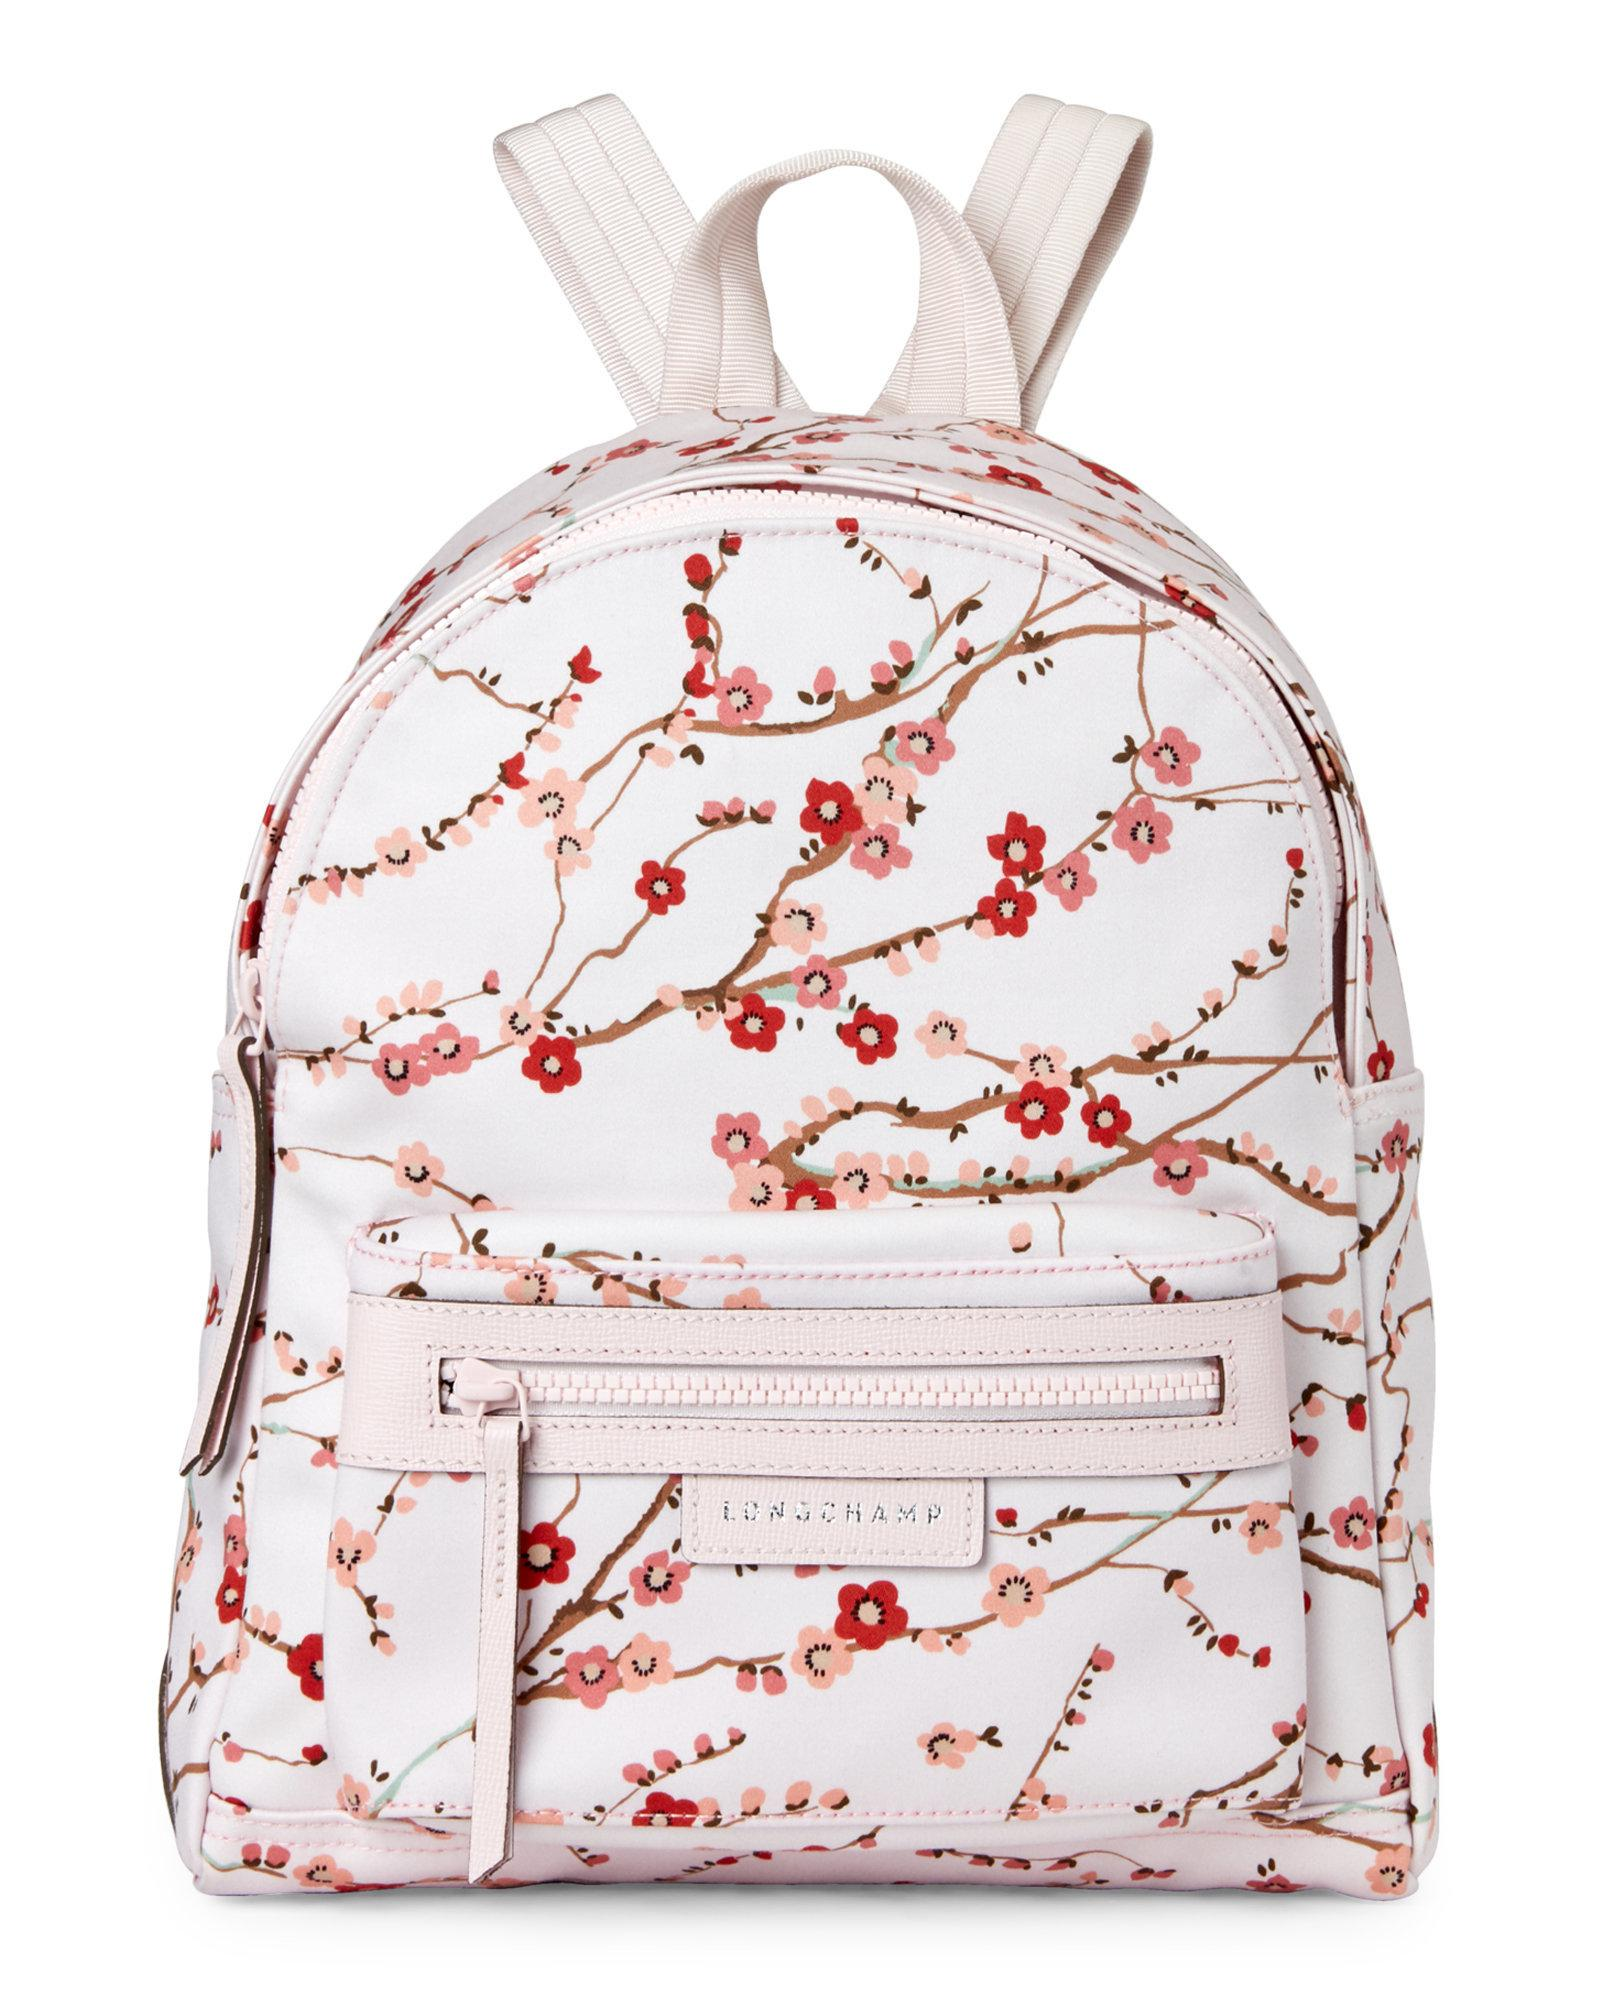 Lyst - Longchamp Pink Le Pliage Néo Sakura Small Nylon Backpack in Pink 448a8008fc8d3